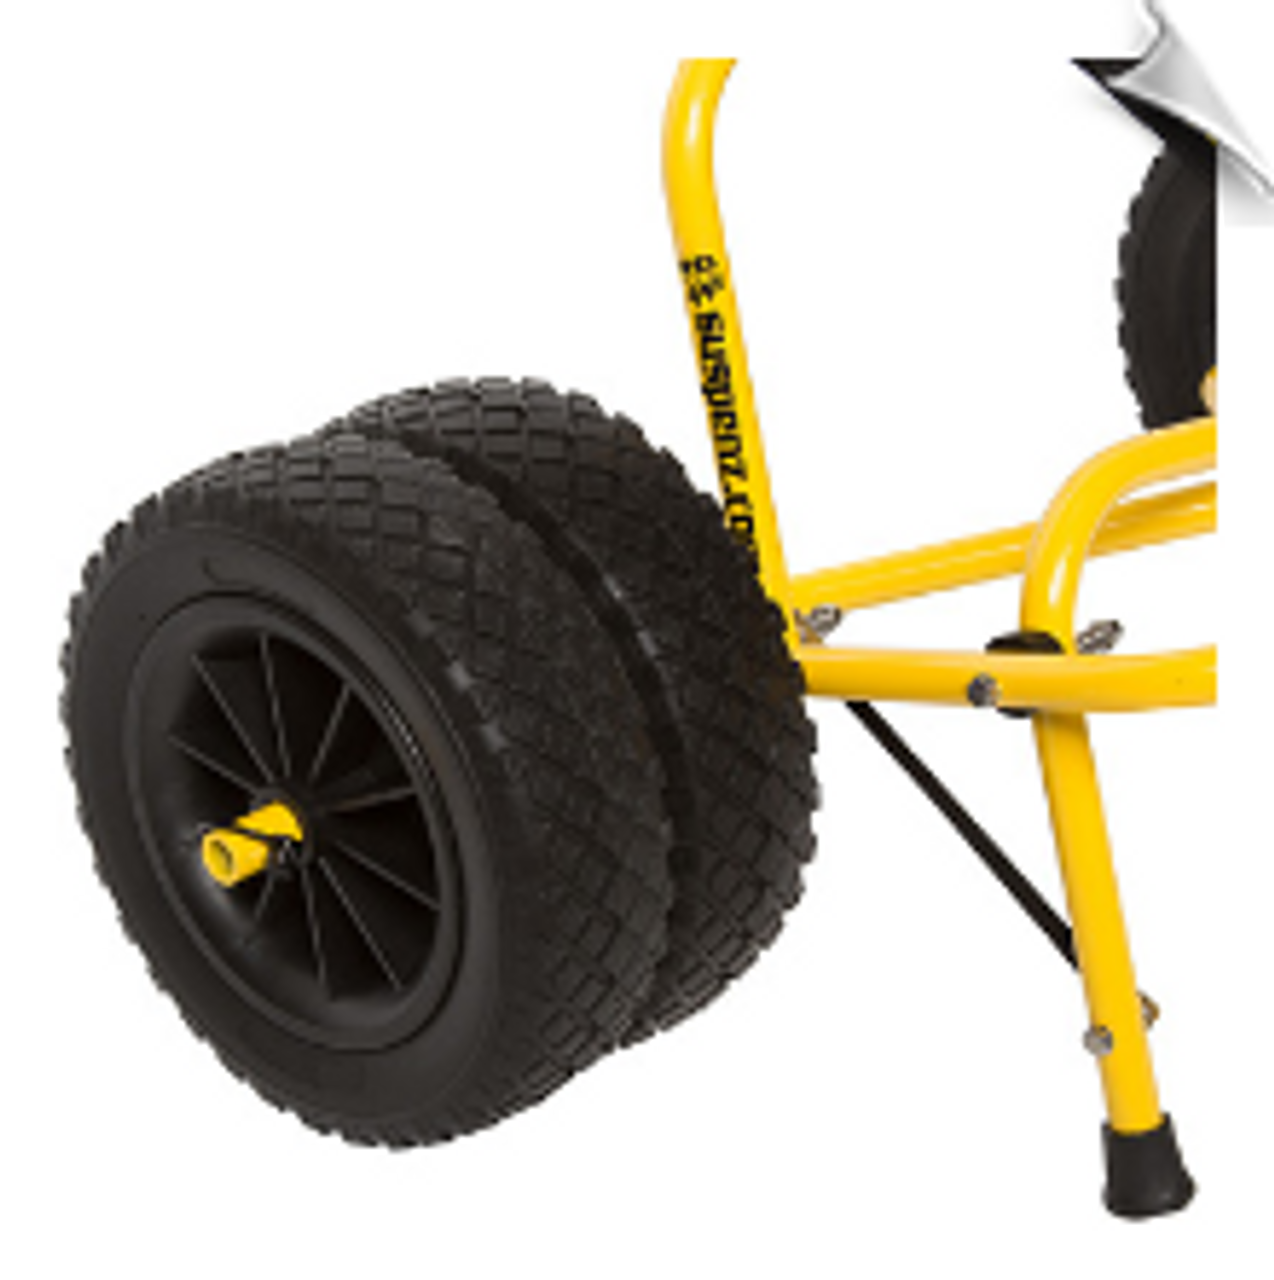 Wheels for kayak or SUP cart or trailer